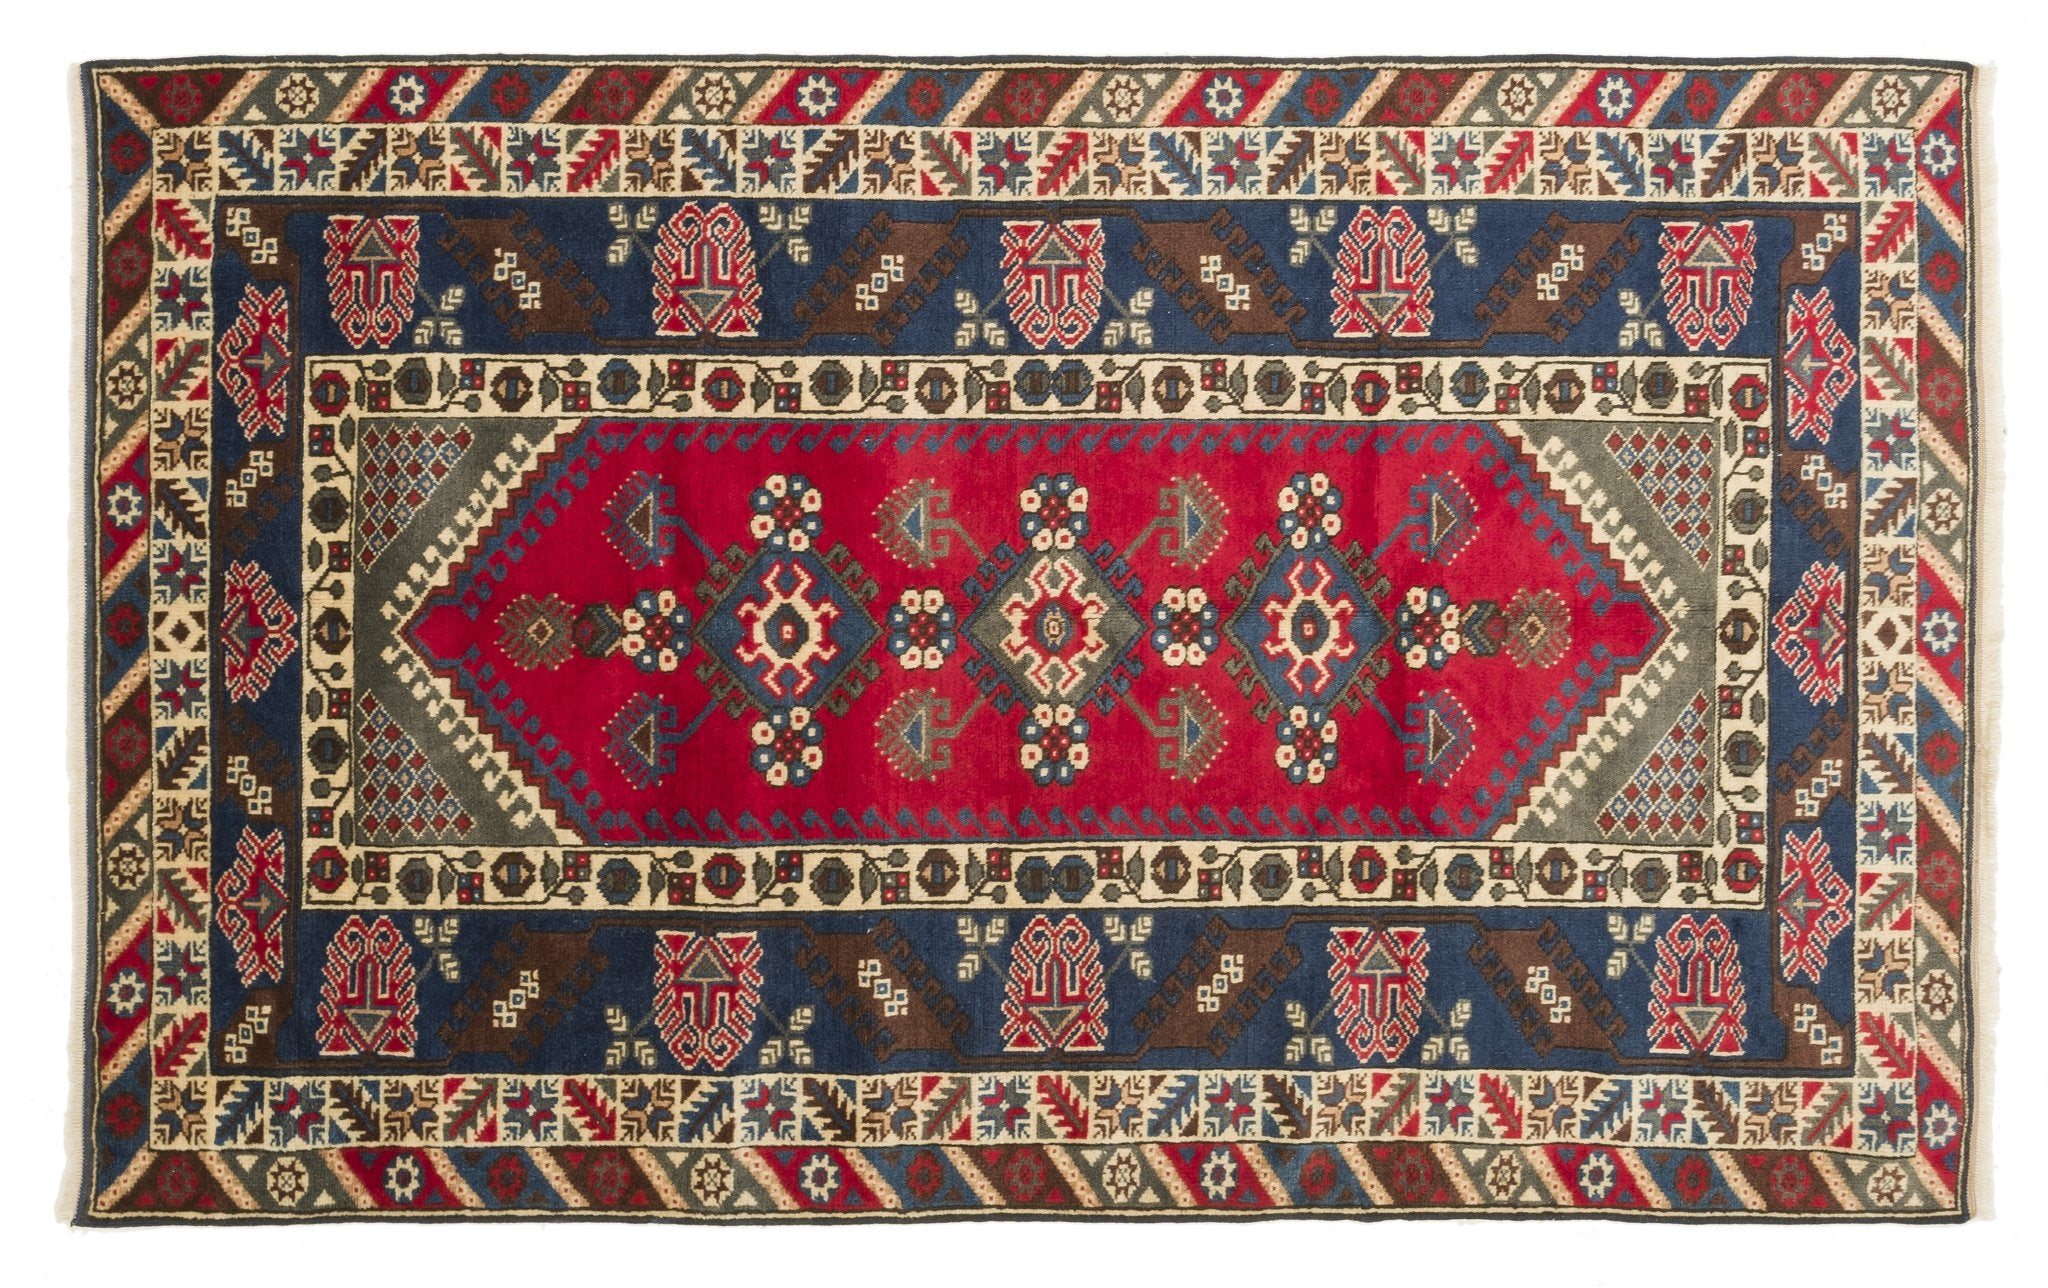 Vintage Turkish Rug Cacilie